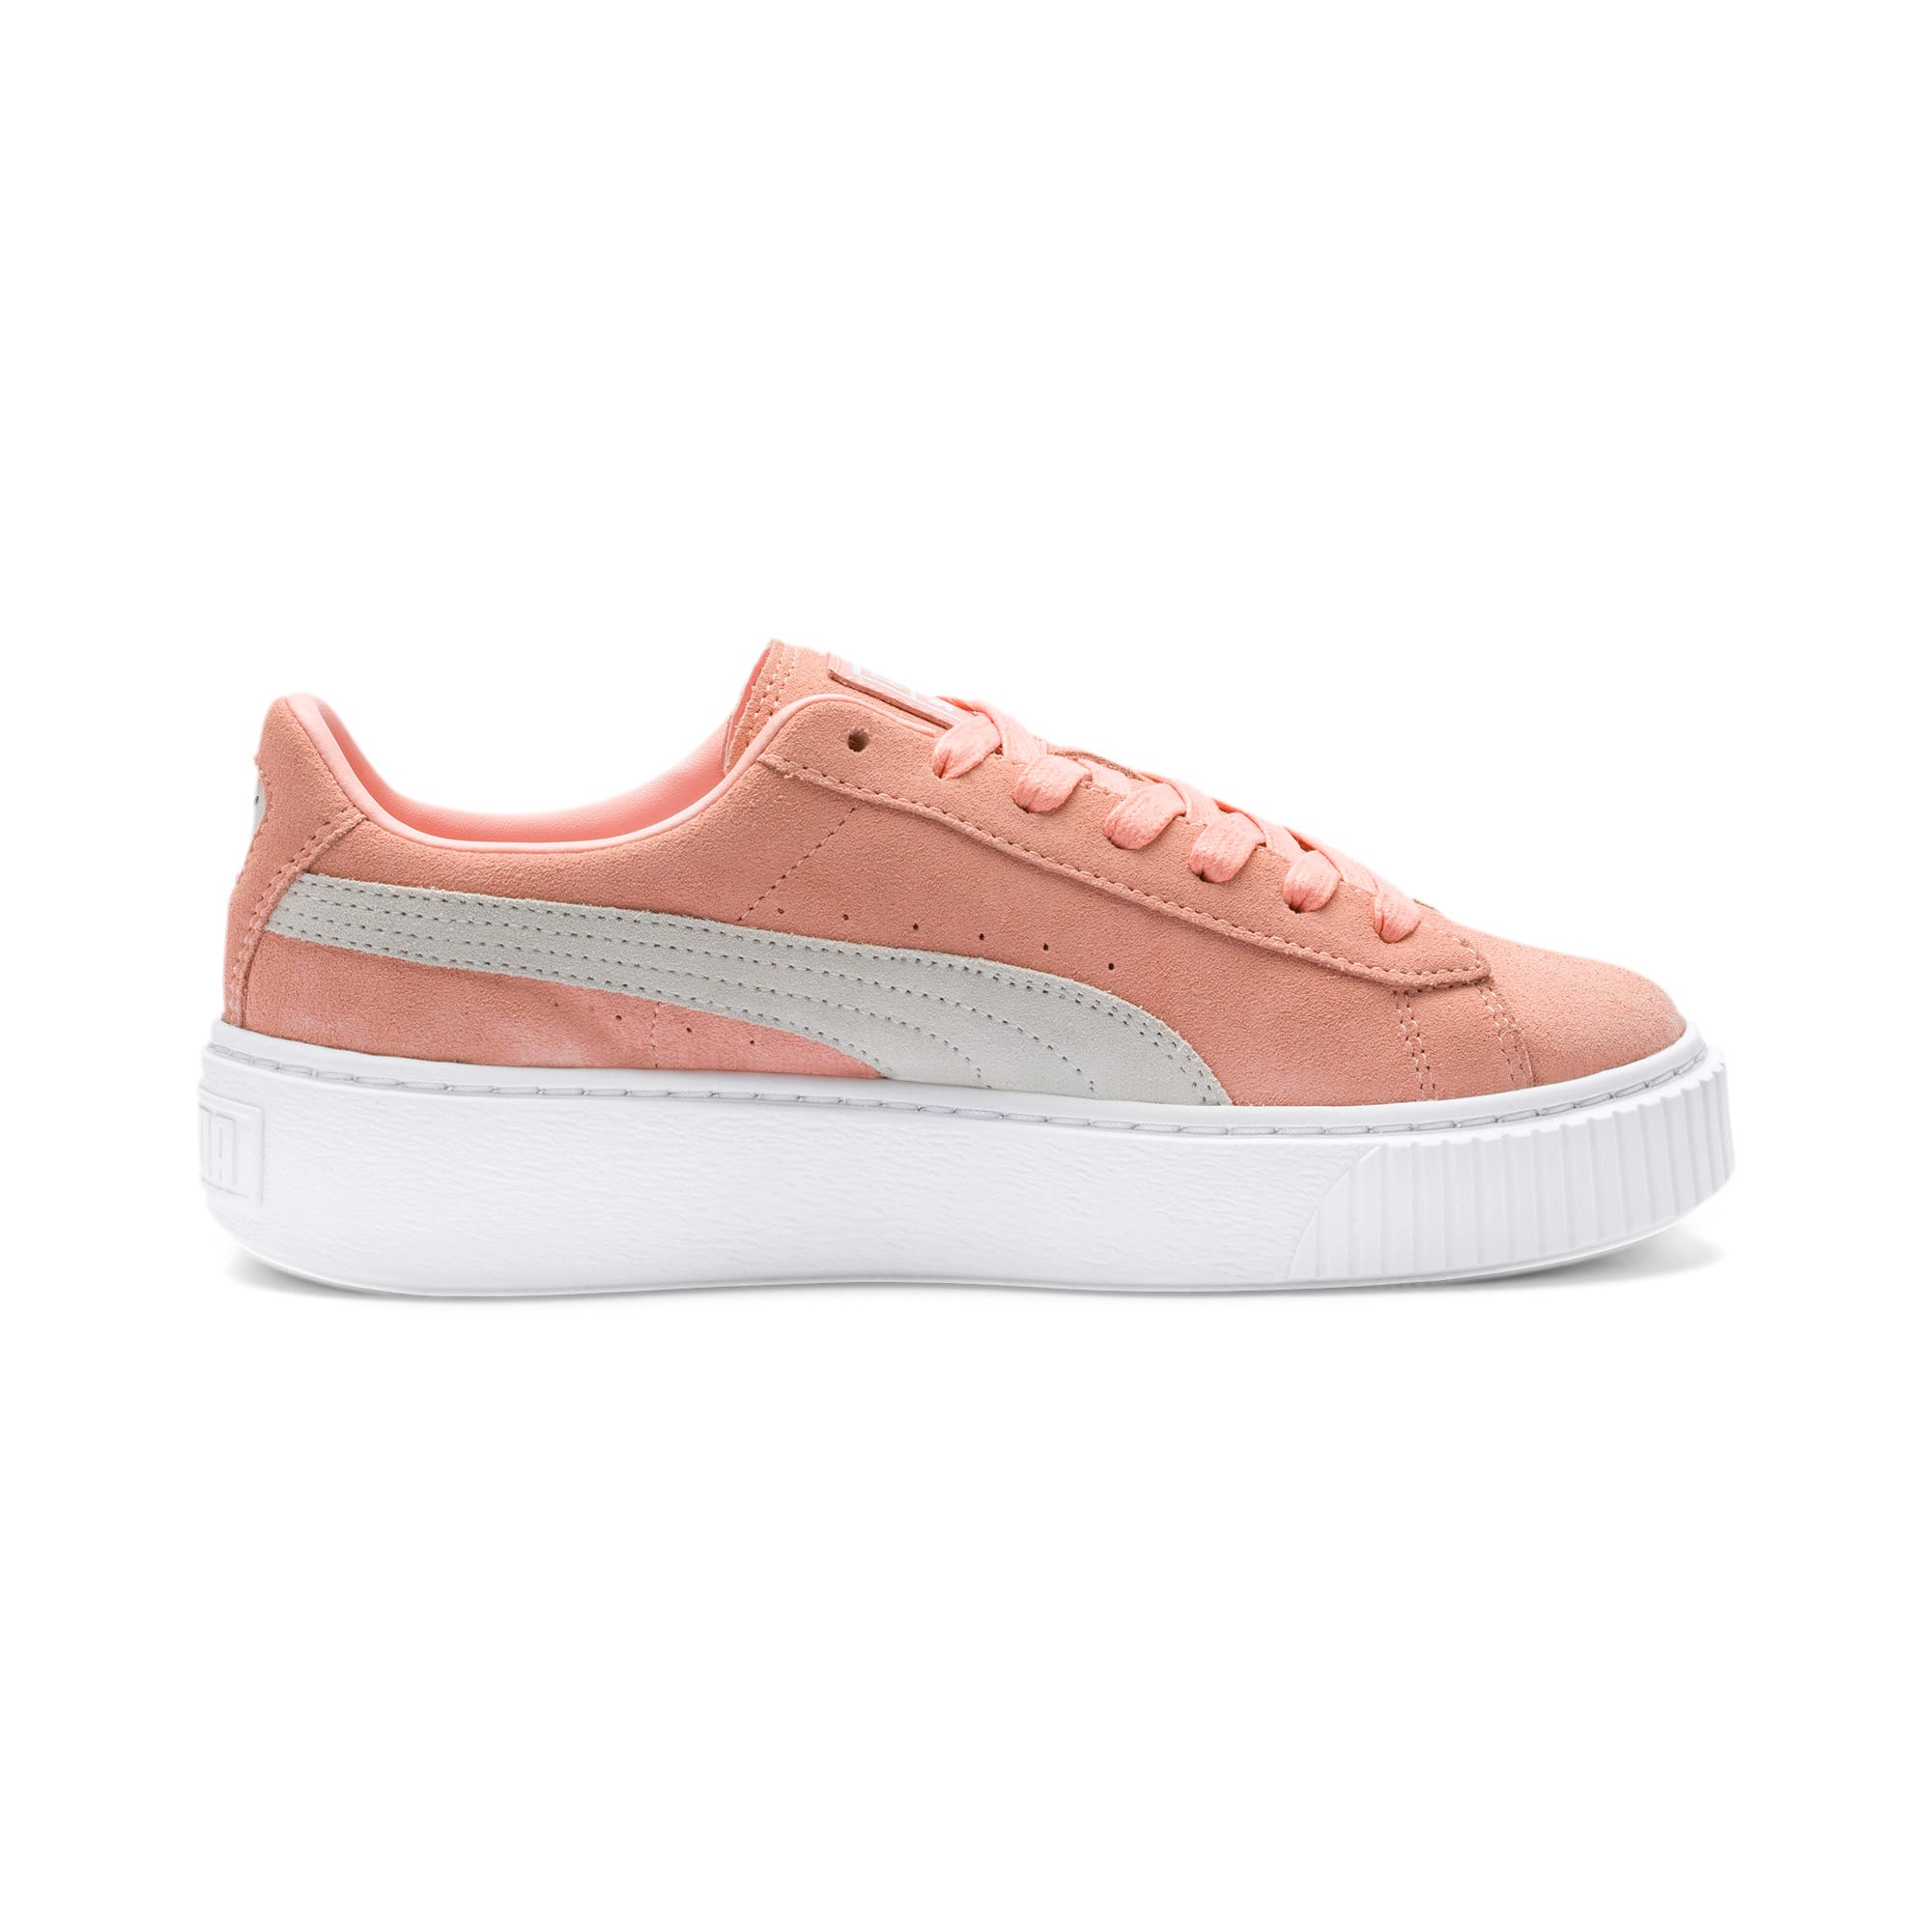 Thumbnail 5 of Suede Platform Women's Sneakers, Peach Bud-Puma Silver, medium